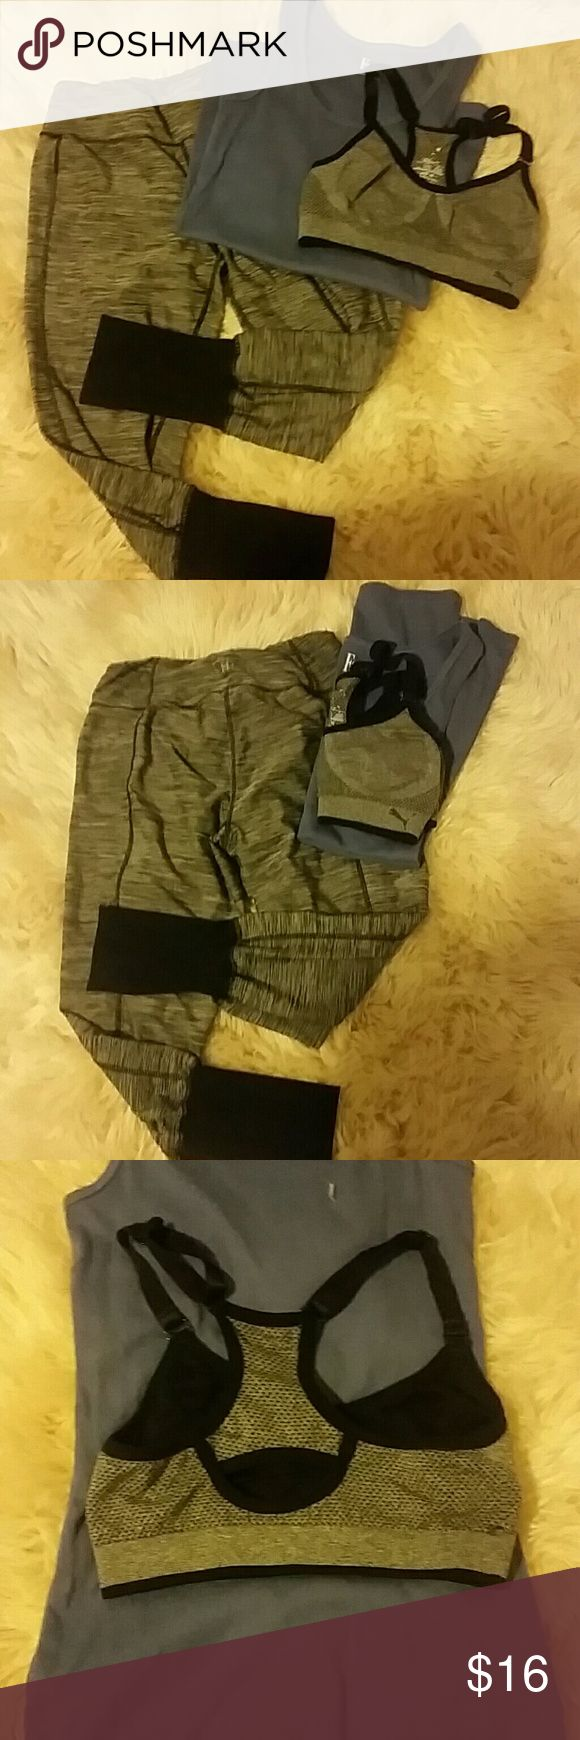 3 pc yoga pant puma sports bra lot Includes 3 pieces  Size small gray/blk kyodan fitted yoga legging Size medium purple felina ribbed tank Size small gray/blk puma sports bra   Tank never worn. Inside label of sports bra worn off (has spots for pads does not include pads) leggings are in good condition.   Check out my other lots! Kyodan Pants Track Pants & Joggers